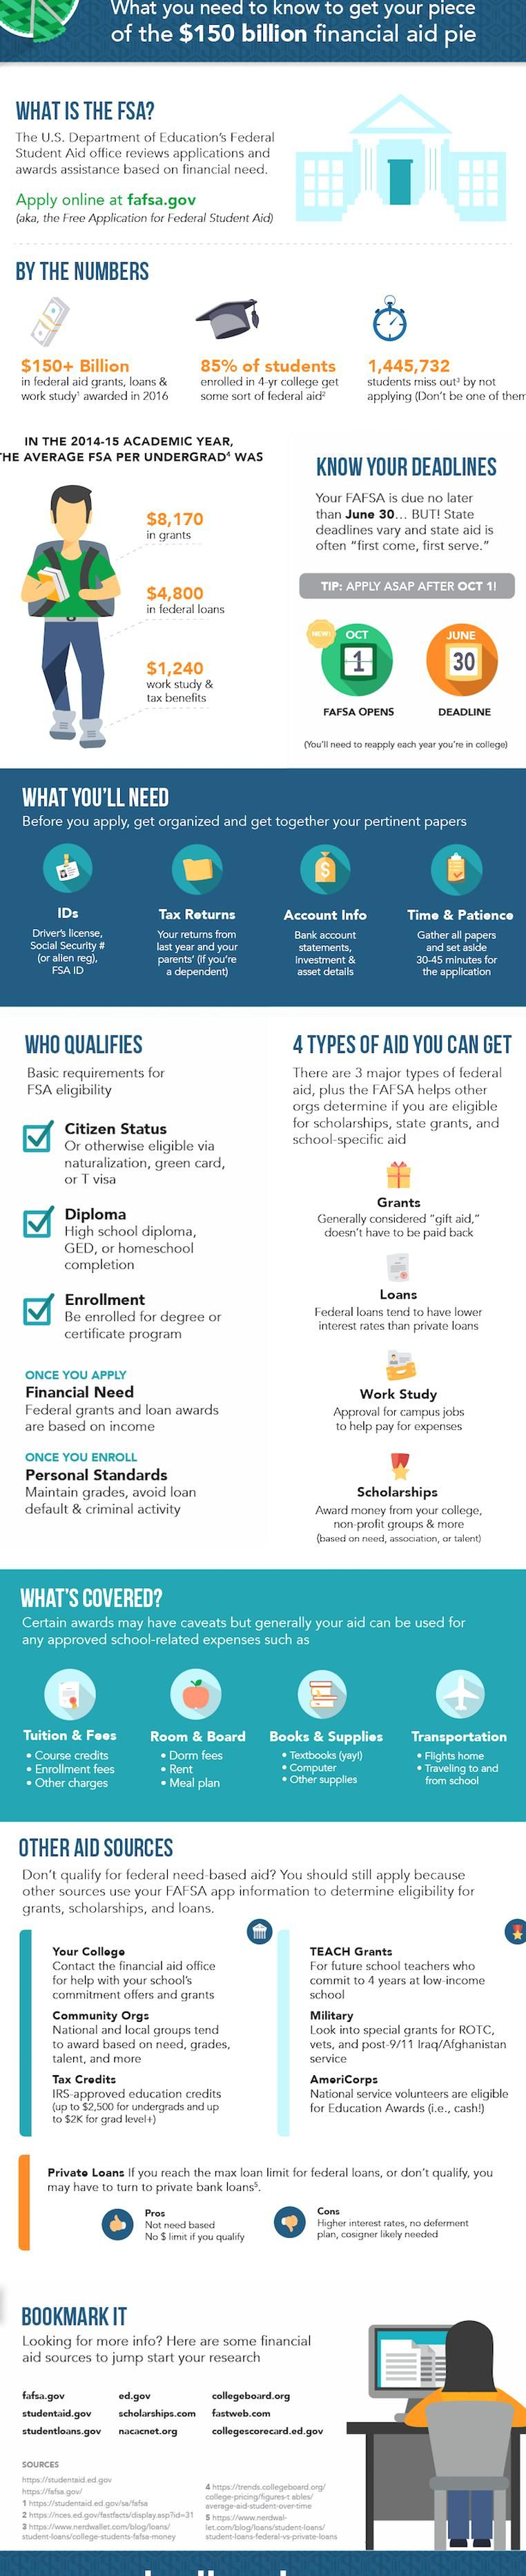 Financial Aid Infographic What You Need To Know To Get Your Piece Of The 150 Billion Fafsa Pie From Textbooks Applyi Federal Loans Financial Aid Scholarships